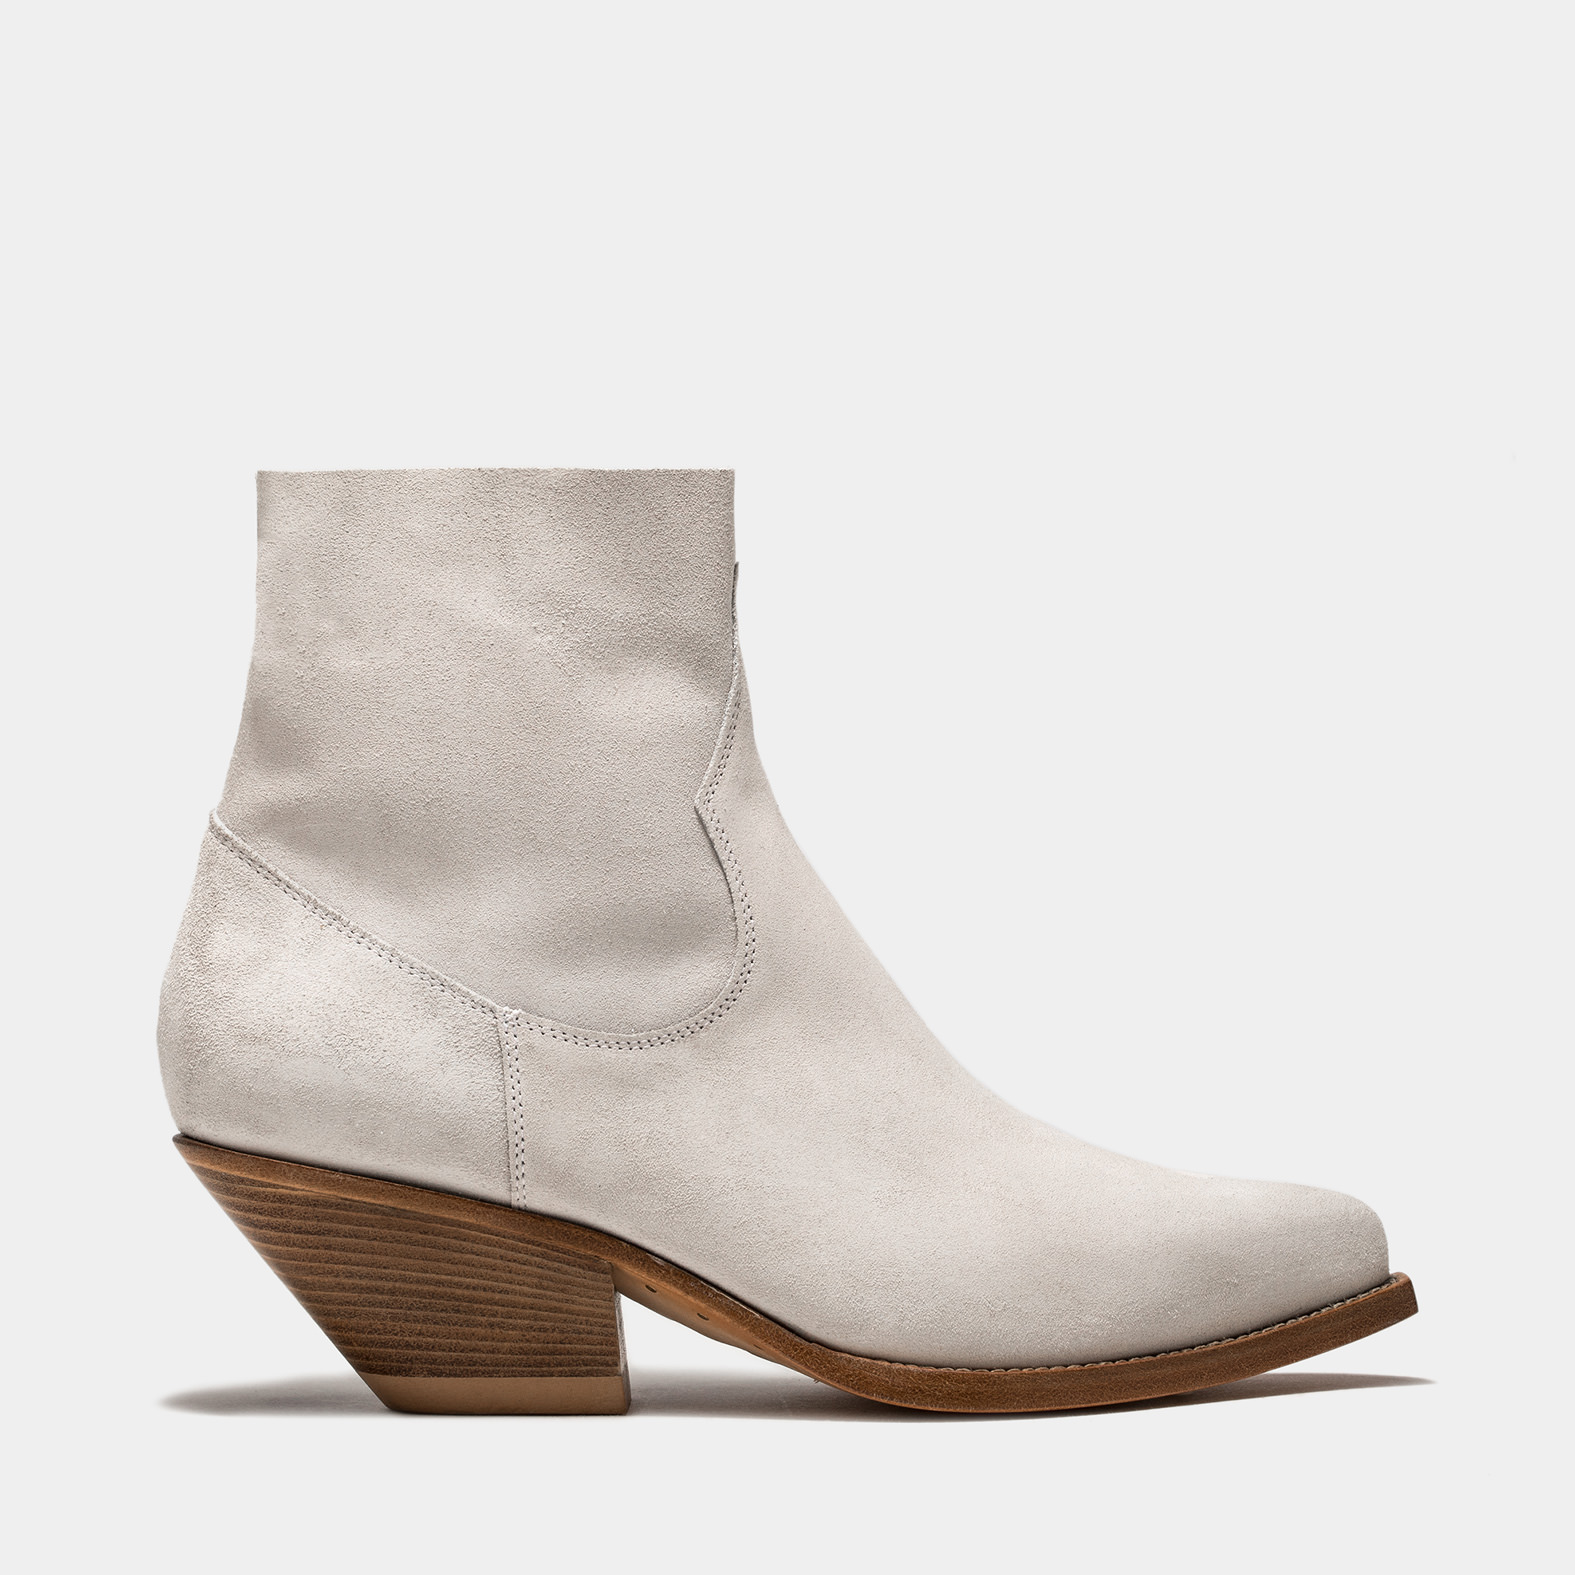 BUTTERO: STIVALE ELISE TEXANO BASSO IN SUEDE BIANCO